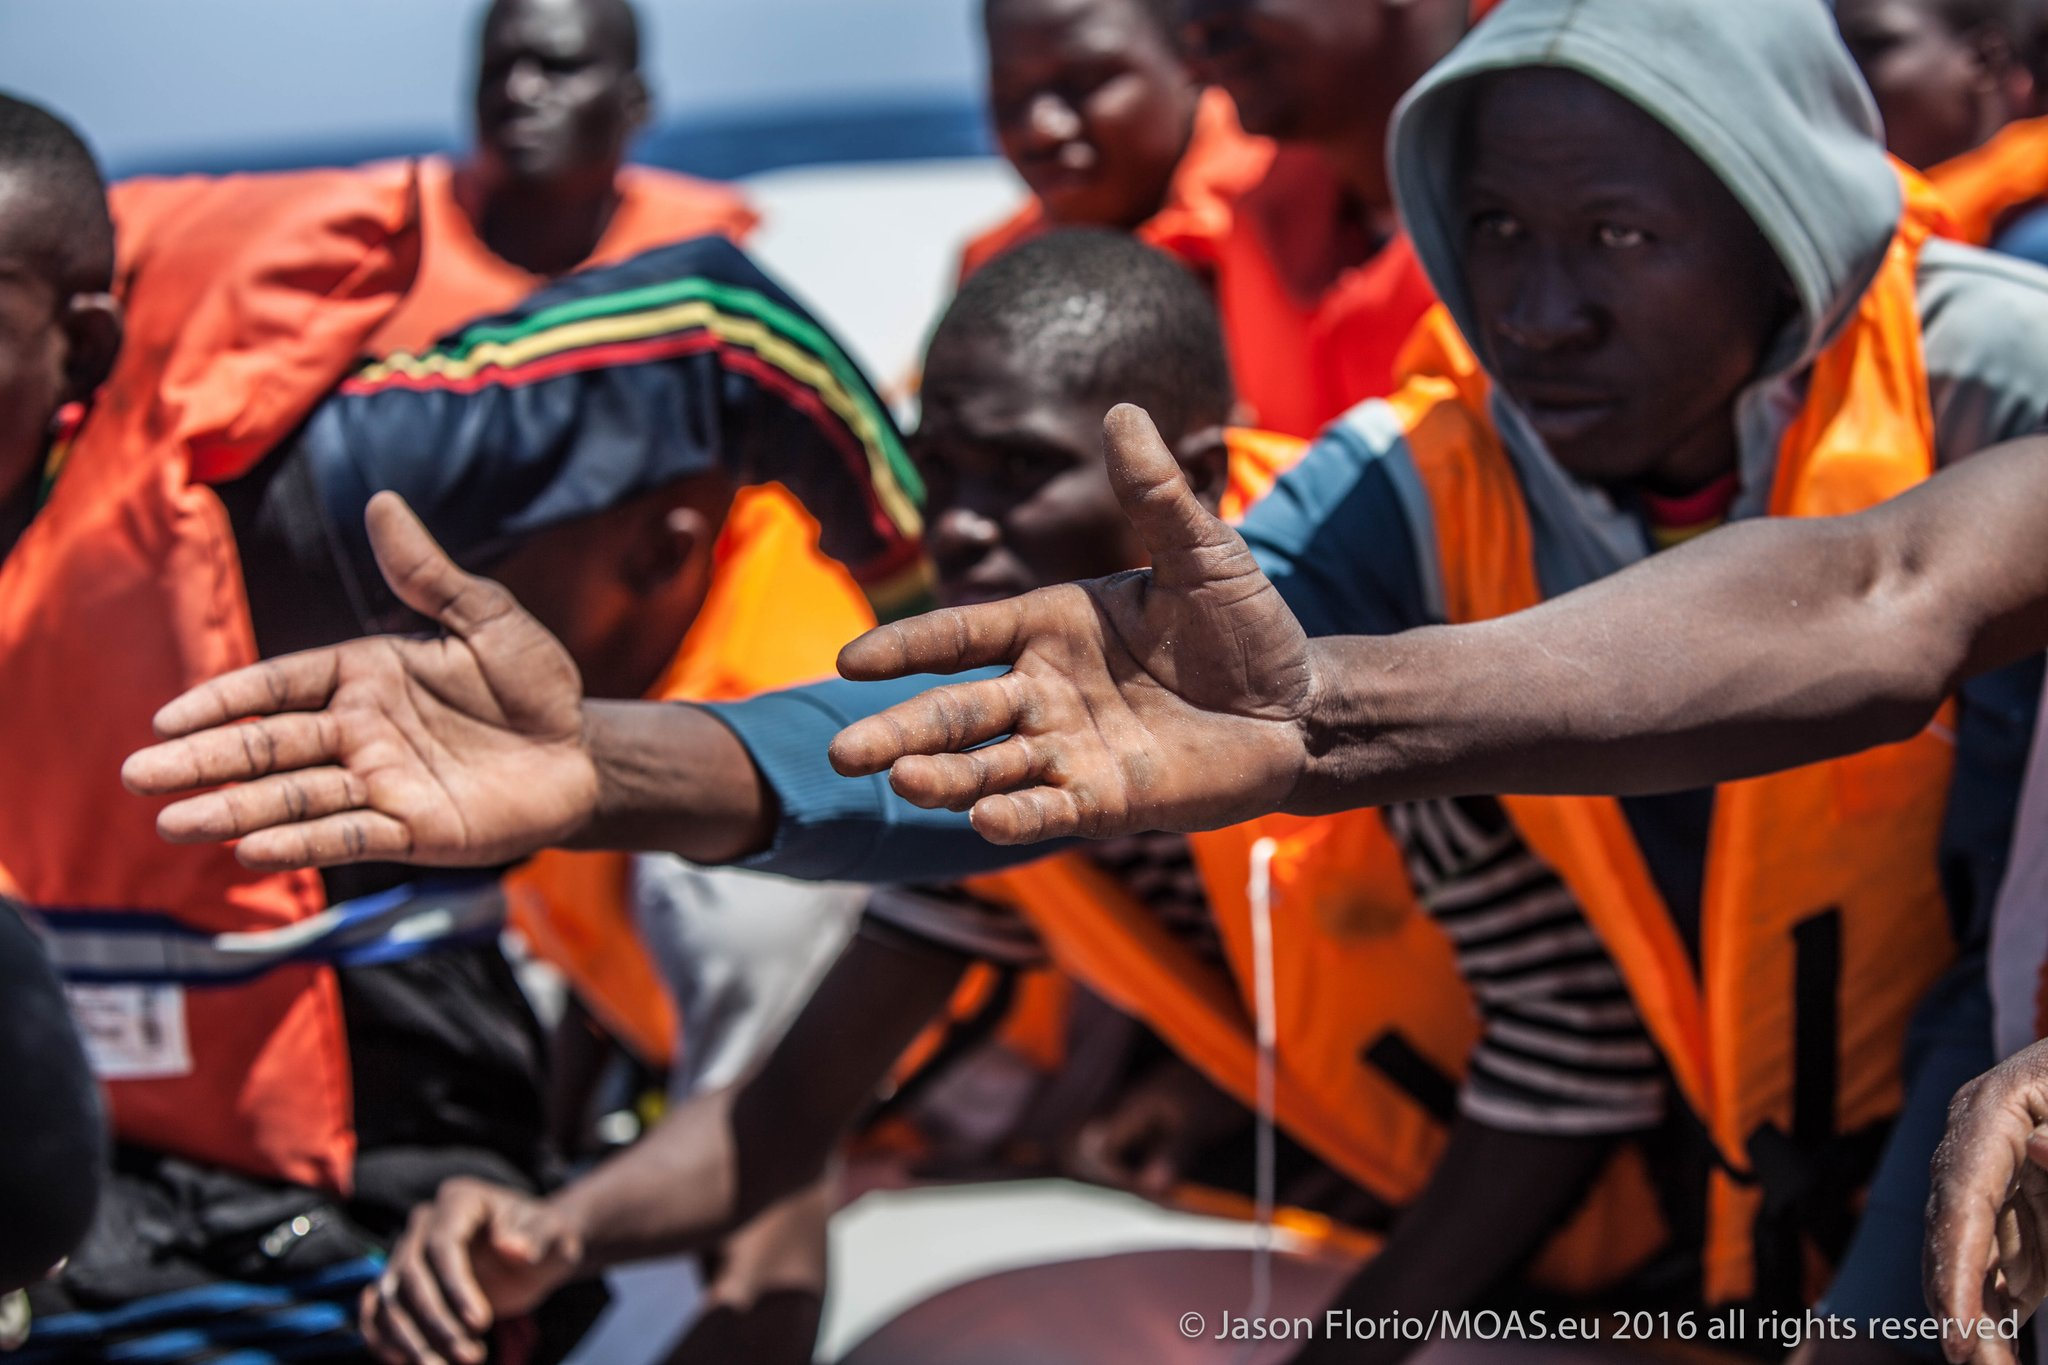 We cannot turn our backs to those most vulnerable; #migrationcrisis is a global #responsibility #WithRefugees https://t.co/1ZrDuzqdR8